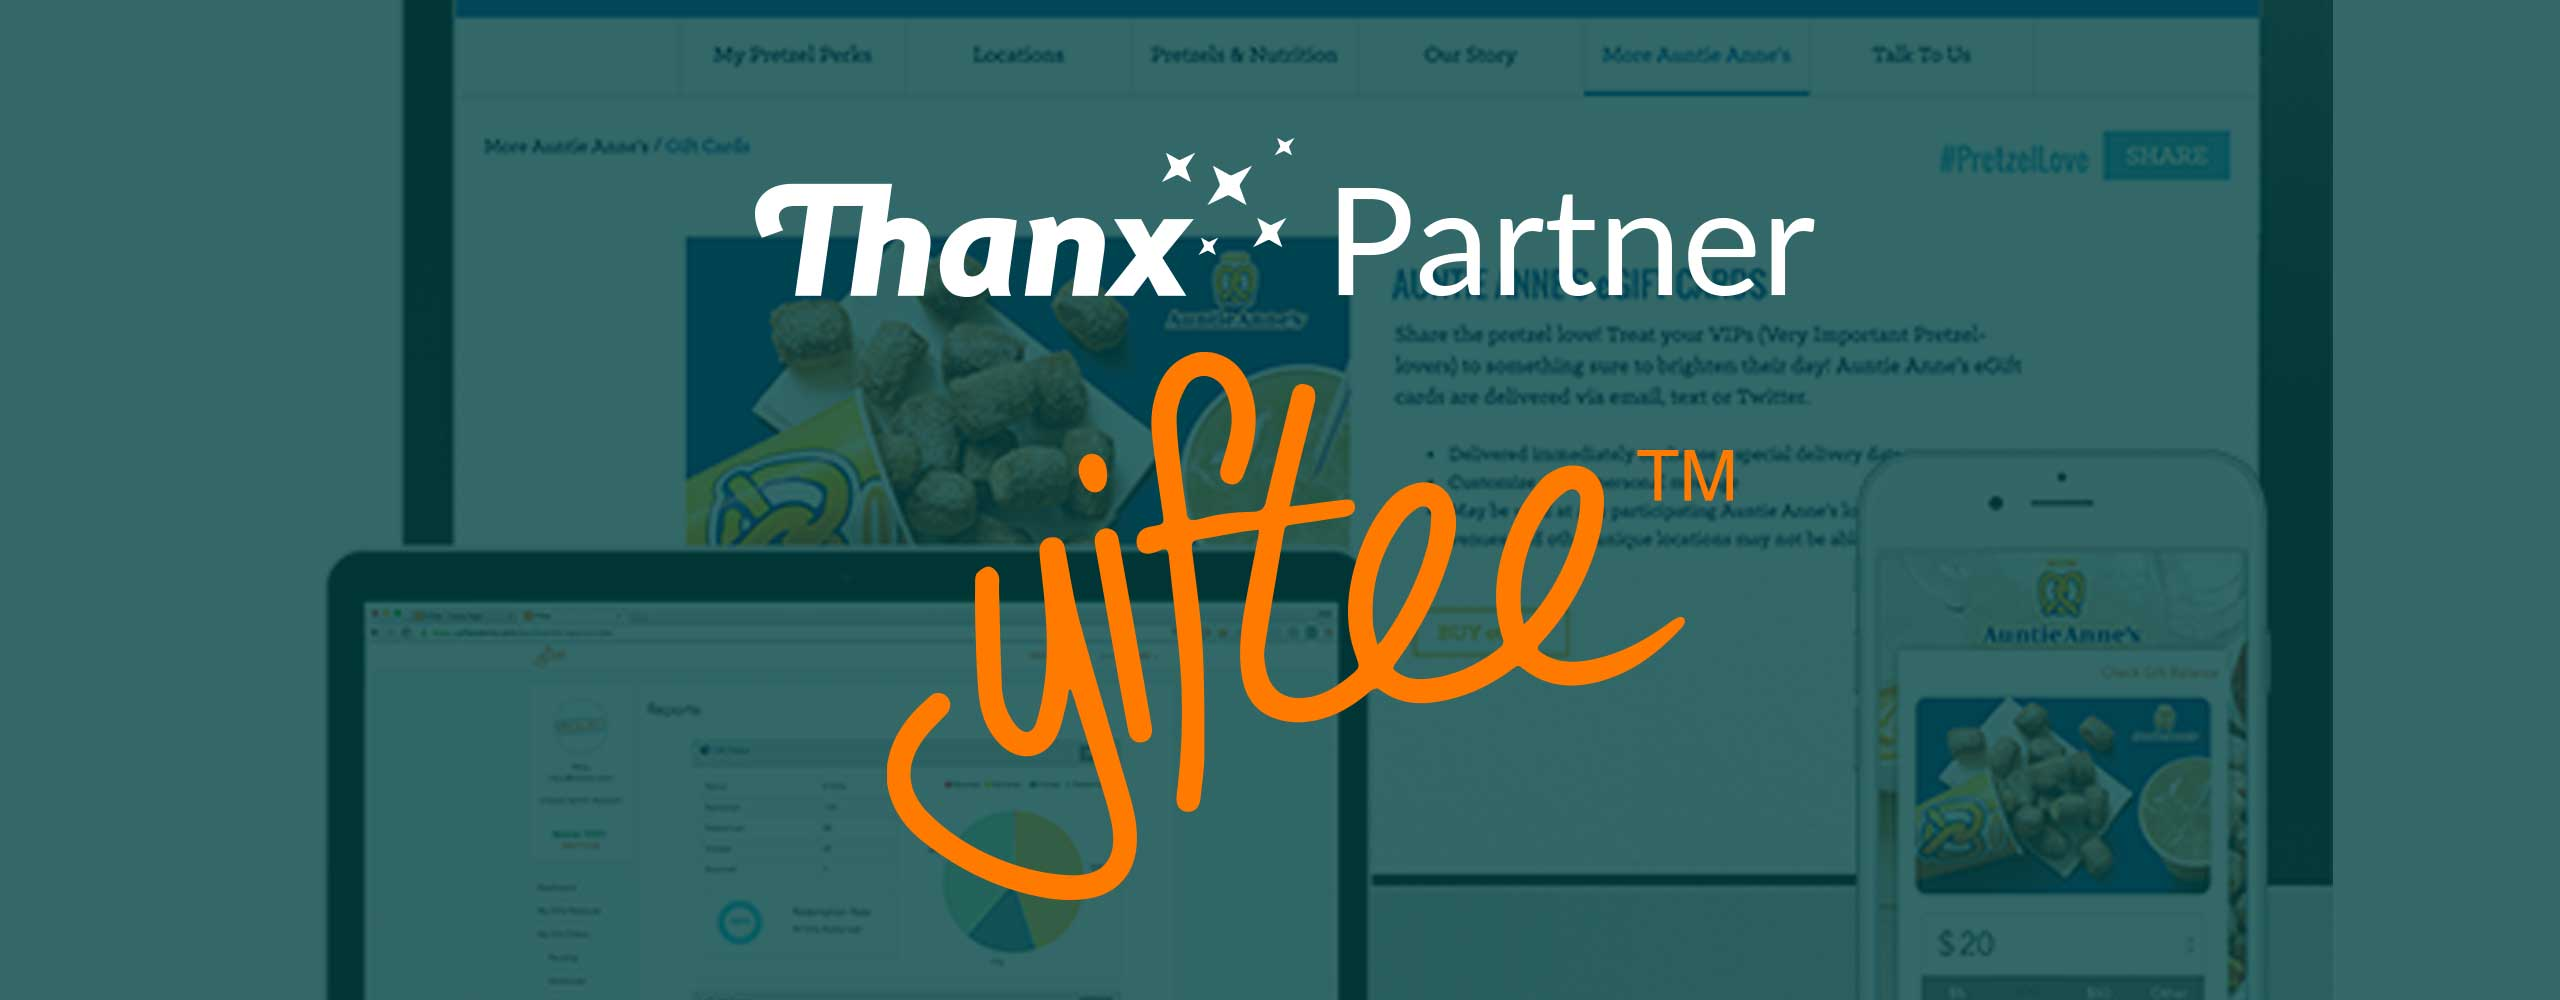 Thanx partners with Yiftee for gift cards